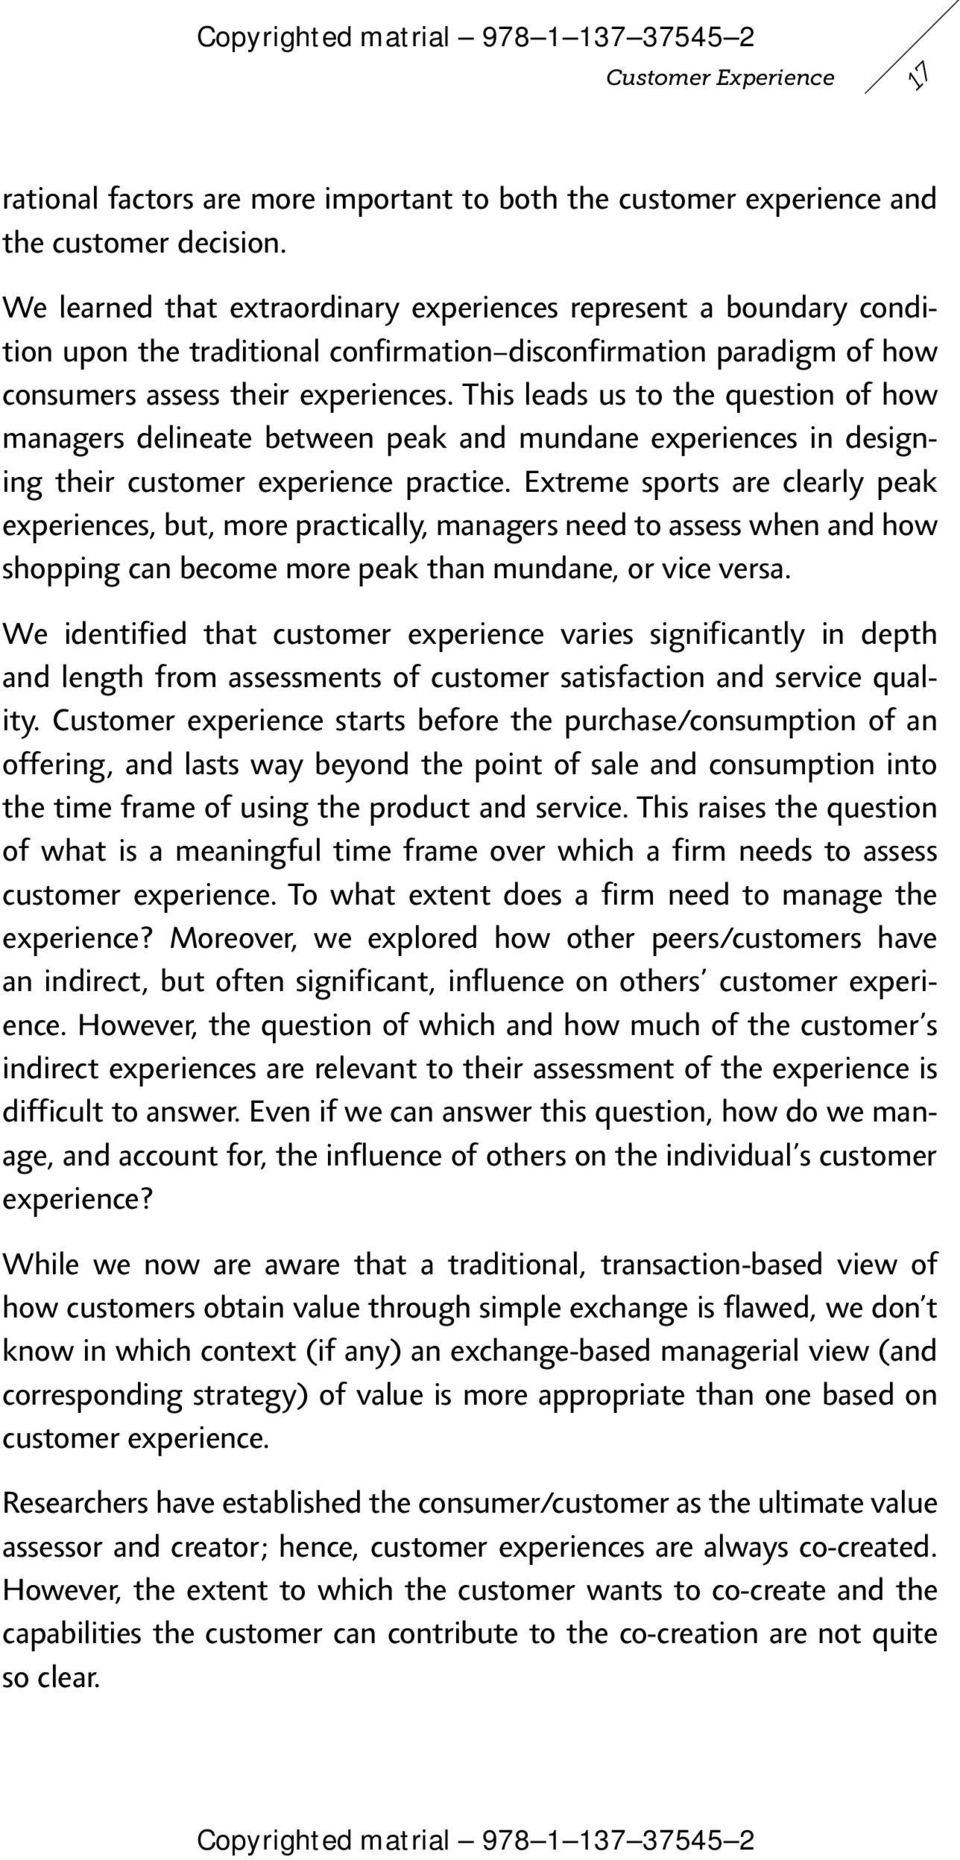 This leads us to the question of how managers delineate between peak and mundane experiences in designing their customer experience practice.